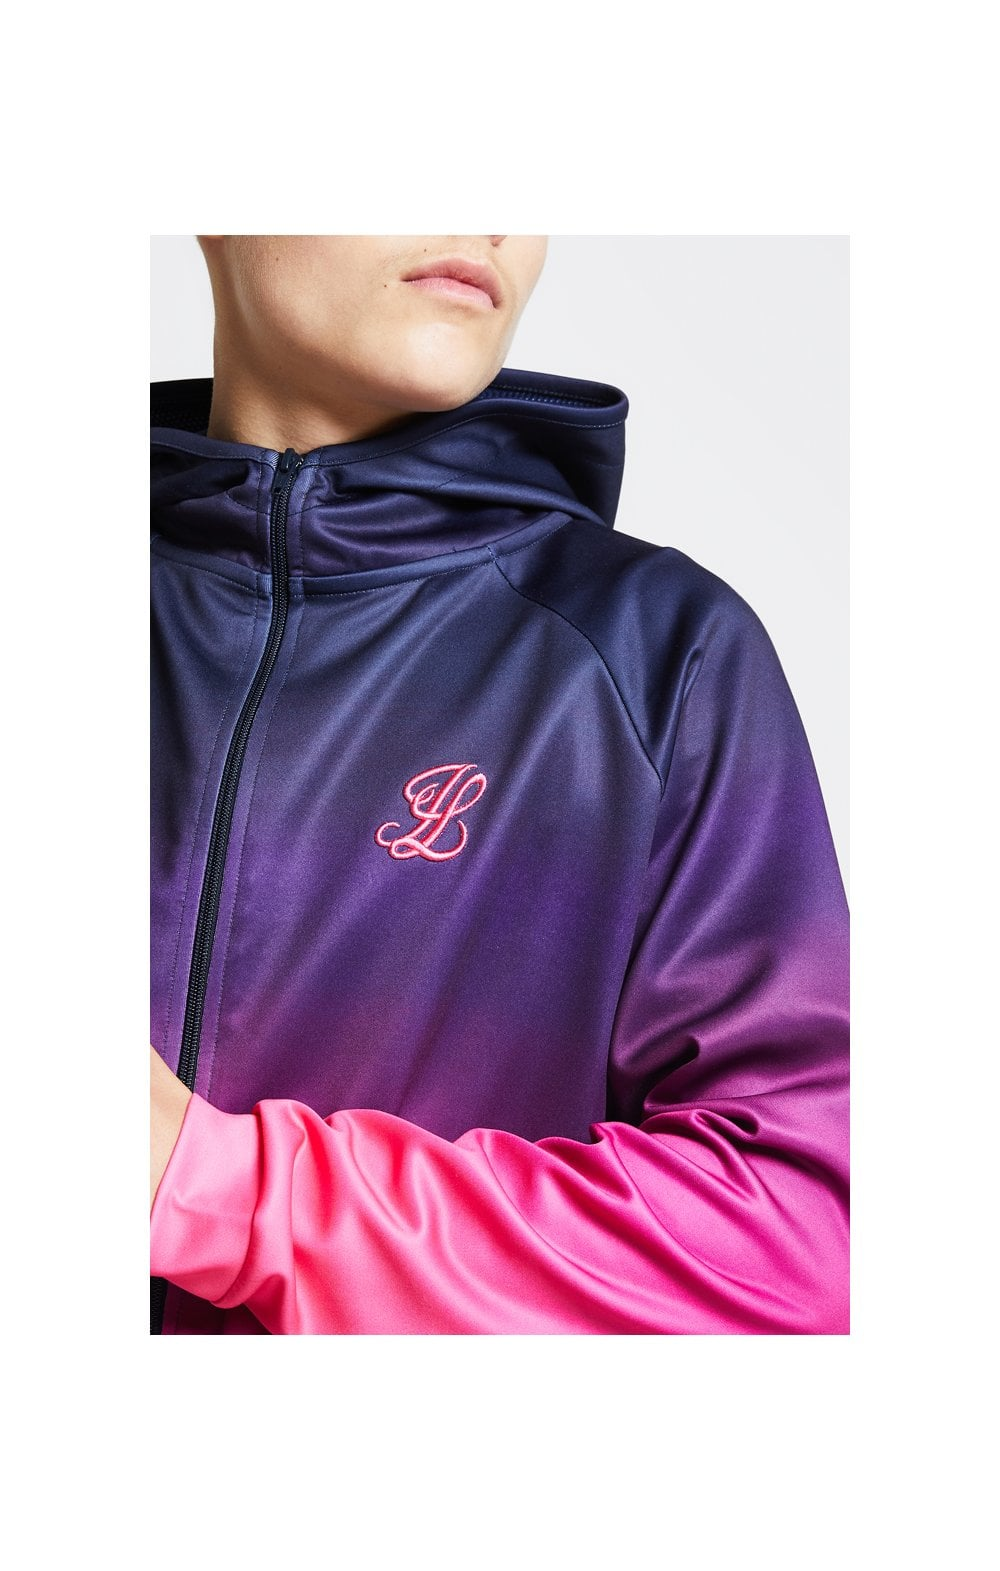 Illusive London Athlete Zip Through Fade Hoodie – Navy & Neon Pink